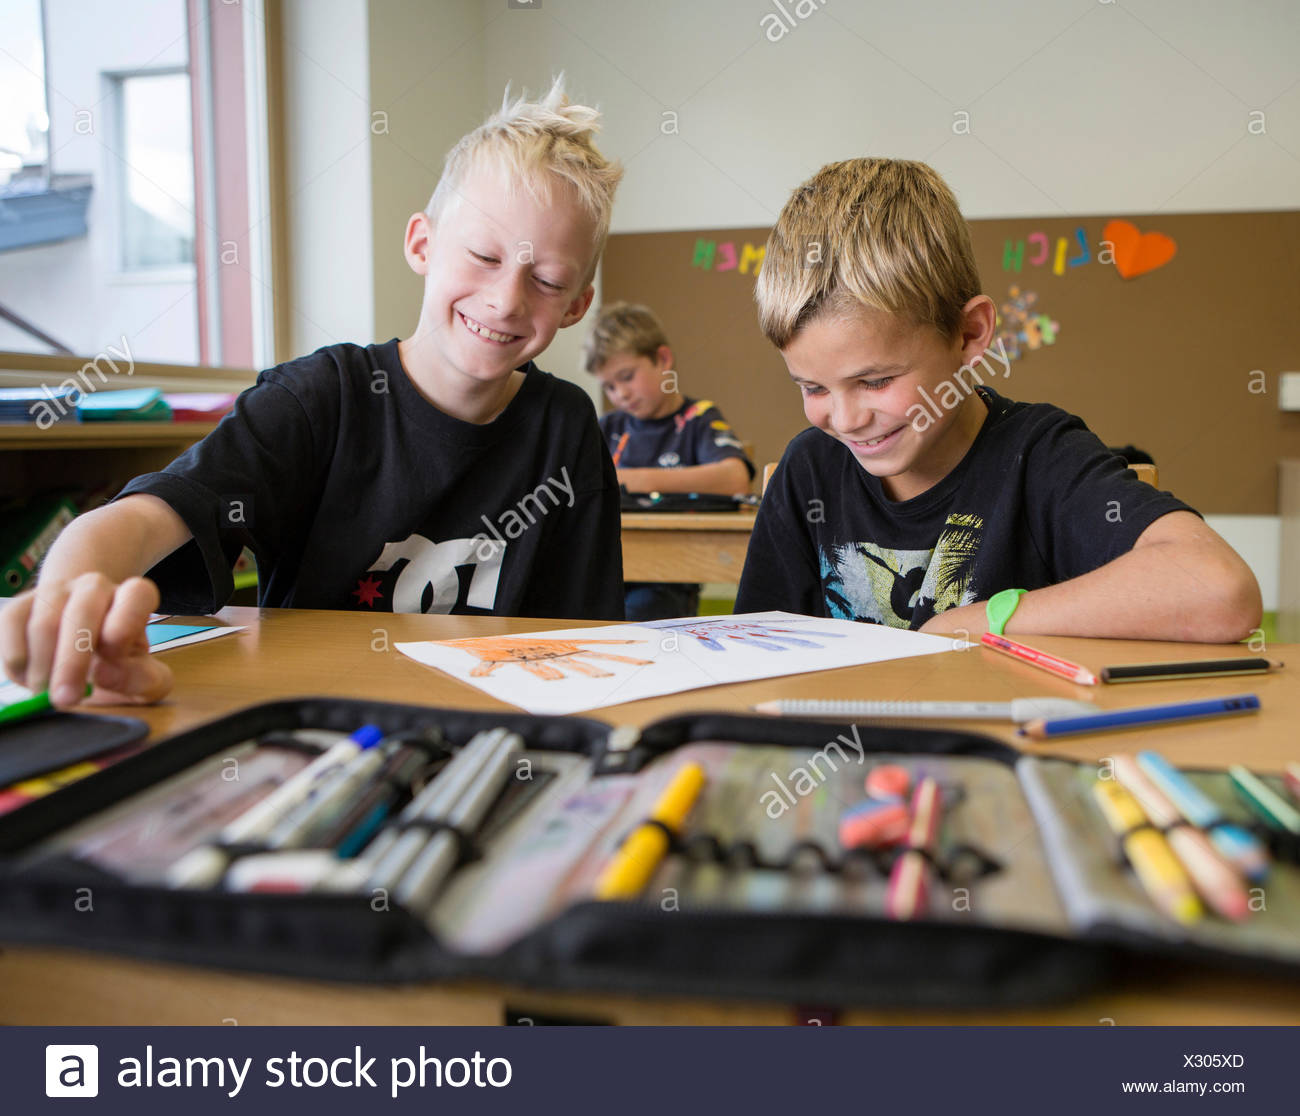 Smiling children sitting in a primary school class during a drawing lesson, Reith im Alpbachtal, Kufstein district, Tyrol - Stock Image